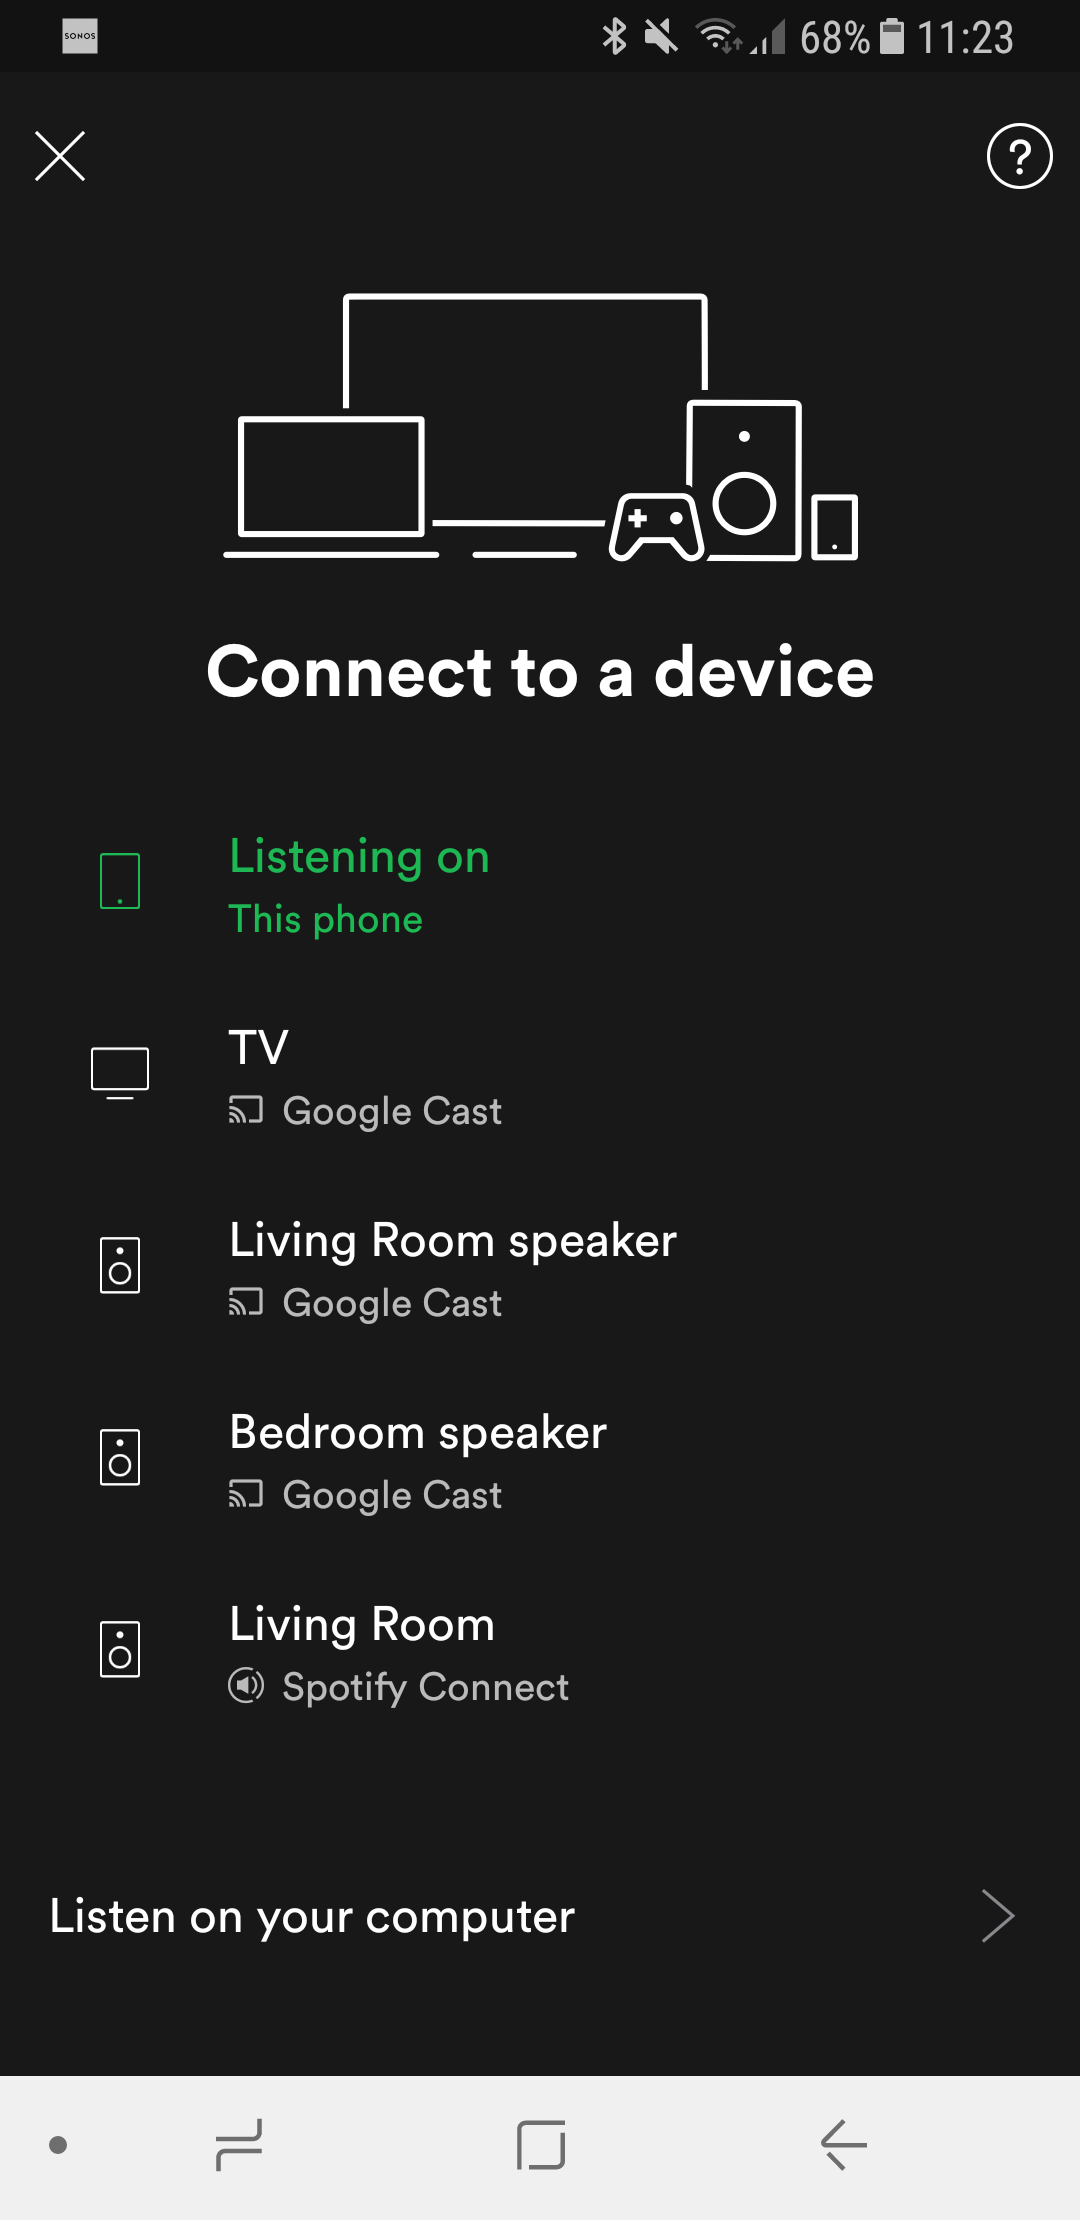 What Is Spotify Connect?